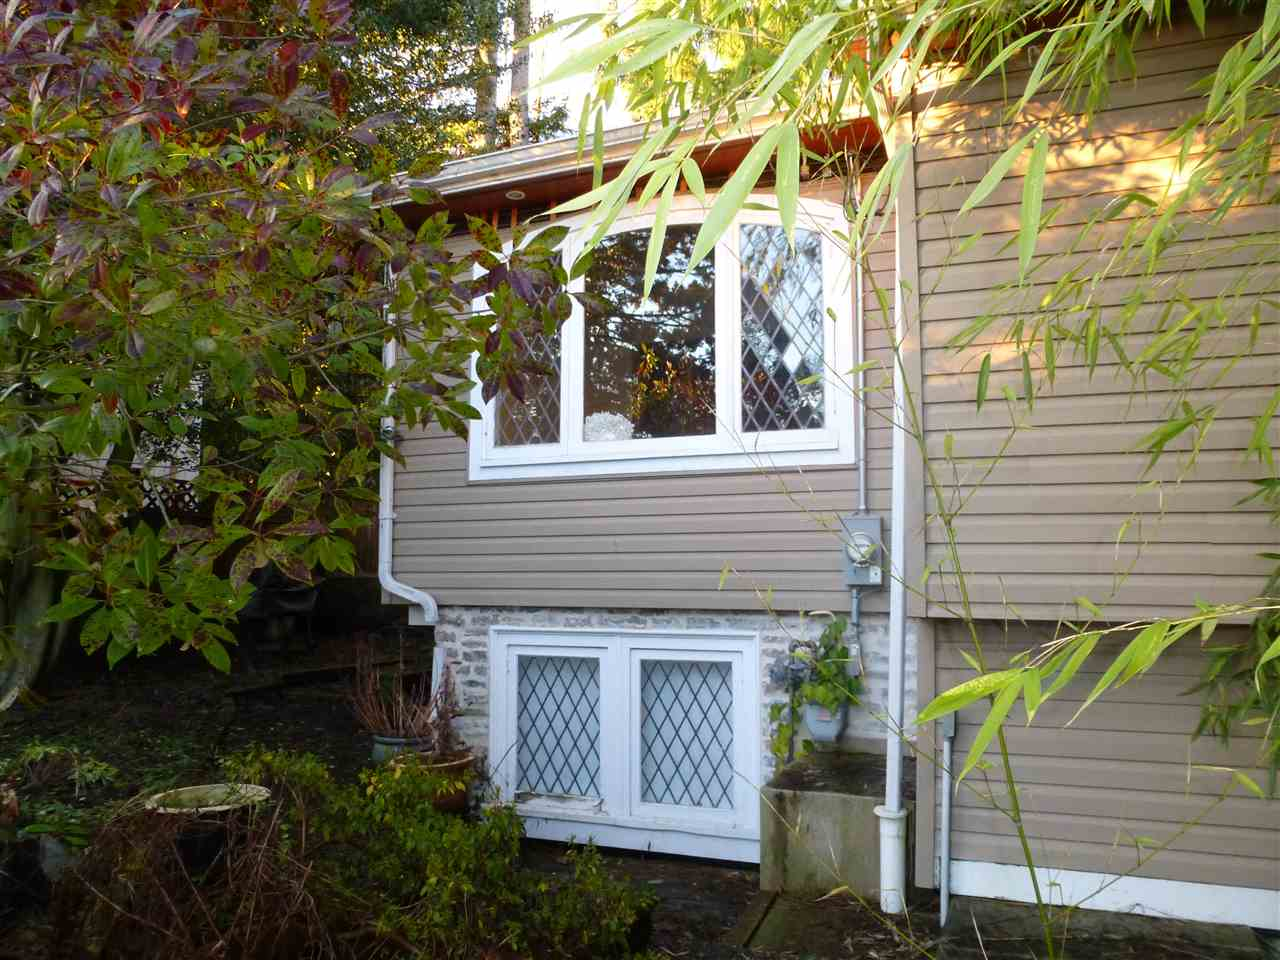 Build Your Dream Home with legal suite & ocean view! Permits in place allowing you to get to lock up stage by Sept 2018. Choose not to build now? This level entry 3 bedroom, 2 bathroom renovated home is located in West Vancouver steps away from schools. Features beautifully gated wrought iron entry, leaded glass windows & foyer which opens out to the large living room. Private yard fully fenced perfect for BBQ and entertaining. Kitchen has granite counters and quality stainless steel appliances. All measurements of importance to be verified by buyer. Call for more information today.